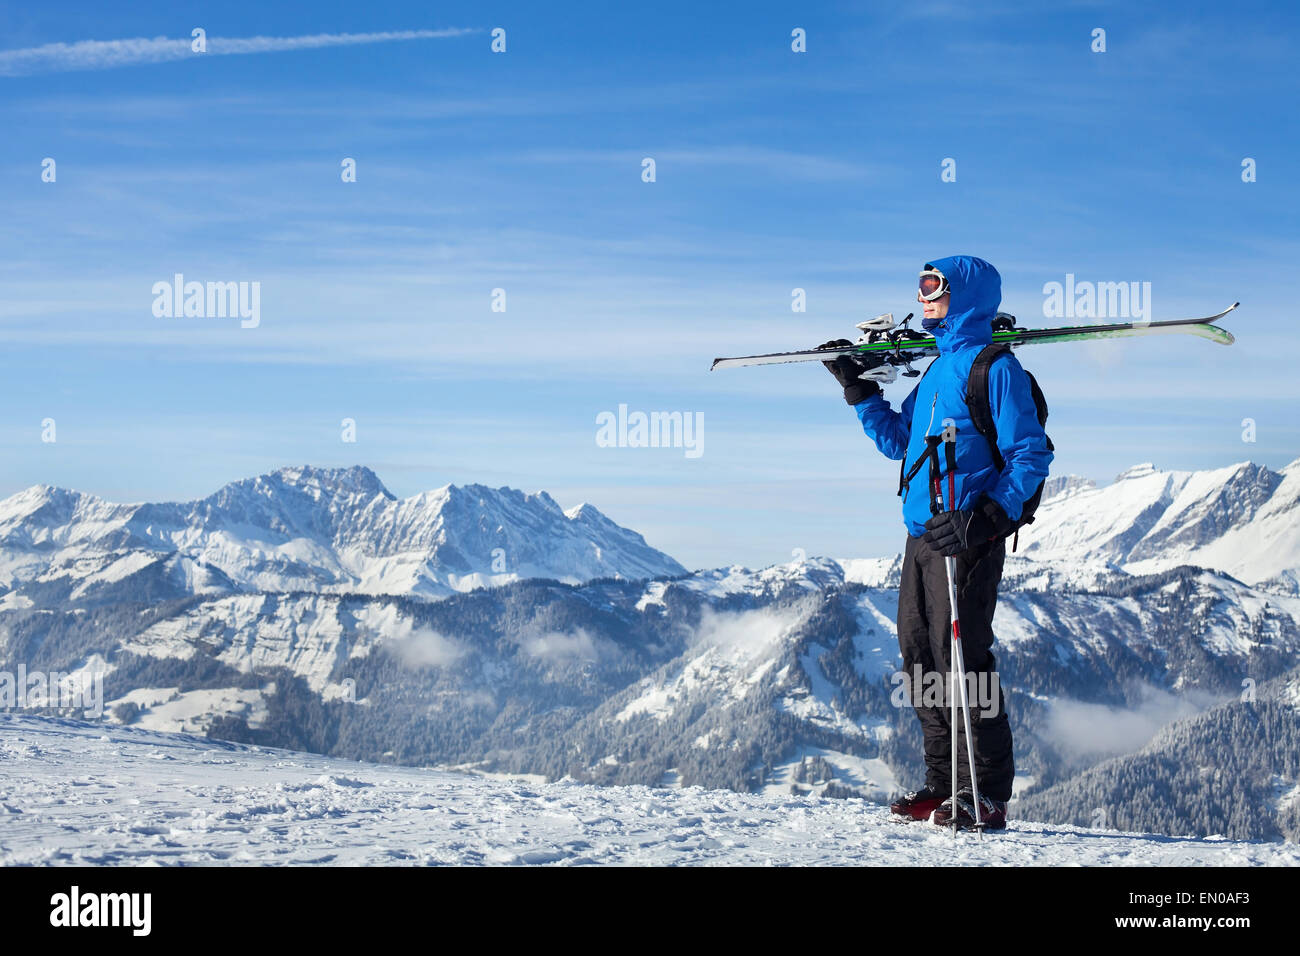 freestyle skiing in Alpine mountains - Stock Image